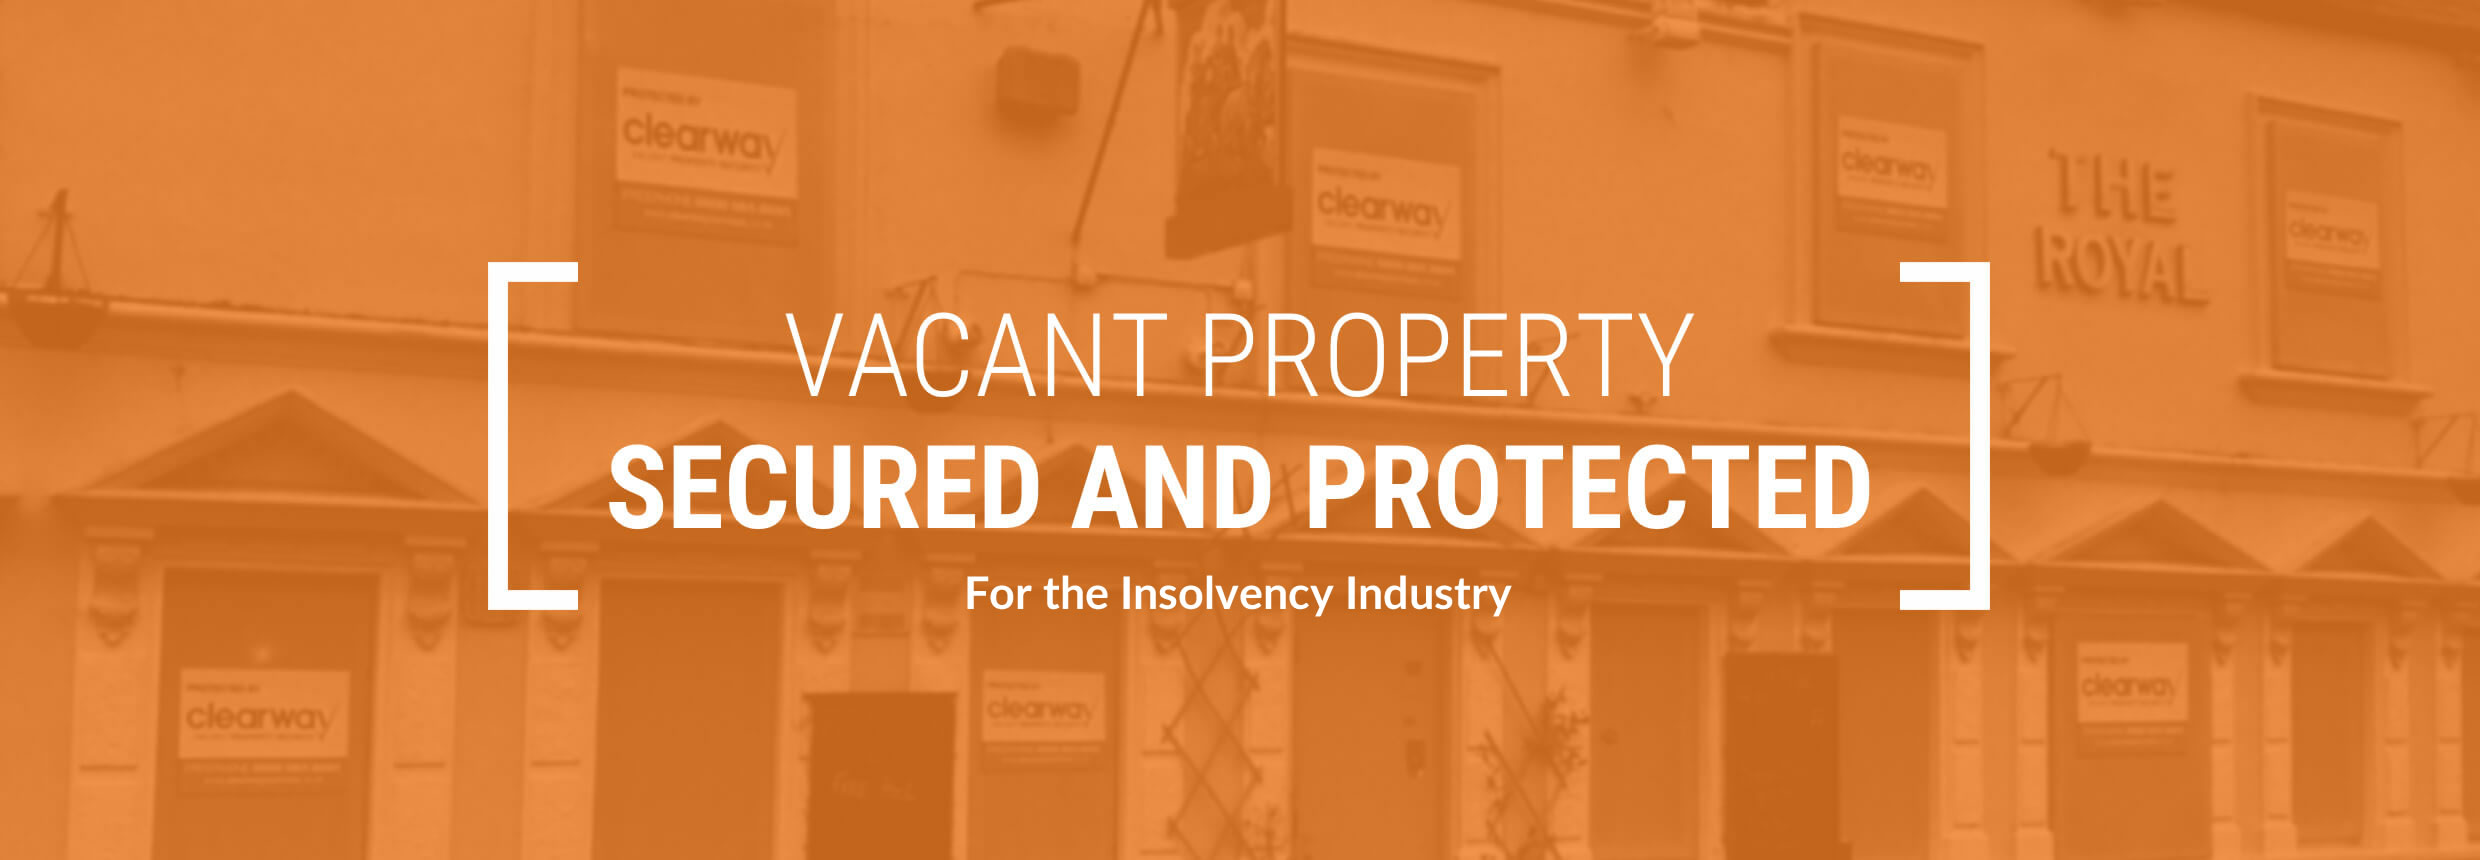 Vacant Property Services For He Insolvency Industry